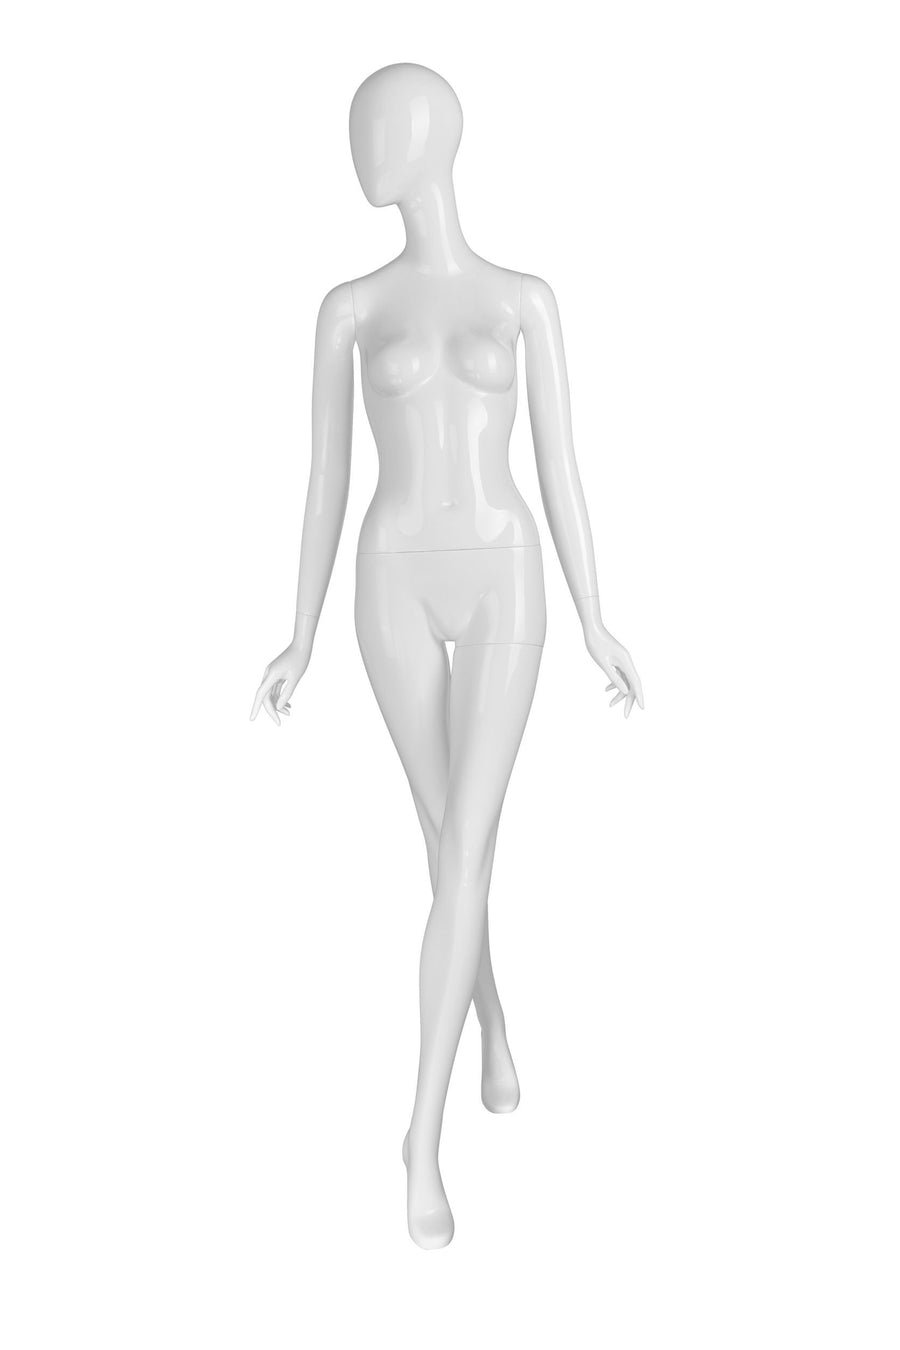 pure white female mannequin with smooth face, arms at sides with hands pointed outward, and left leg crossed in front of right leg